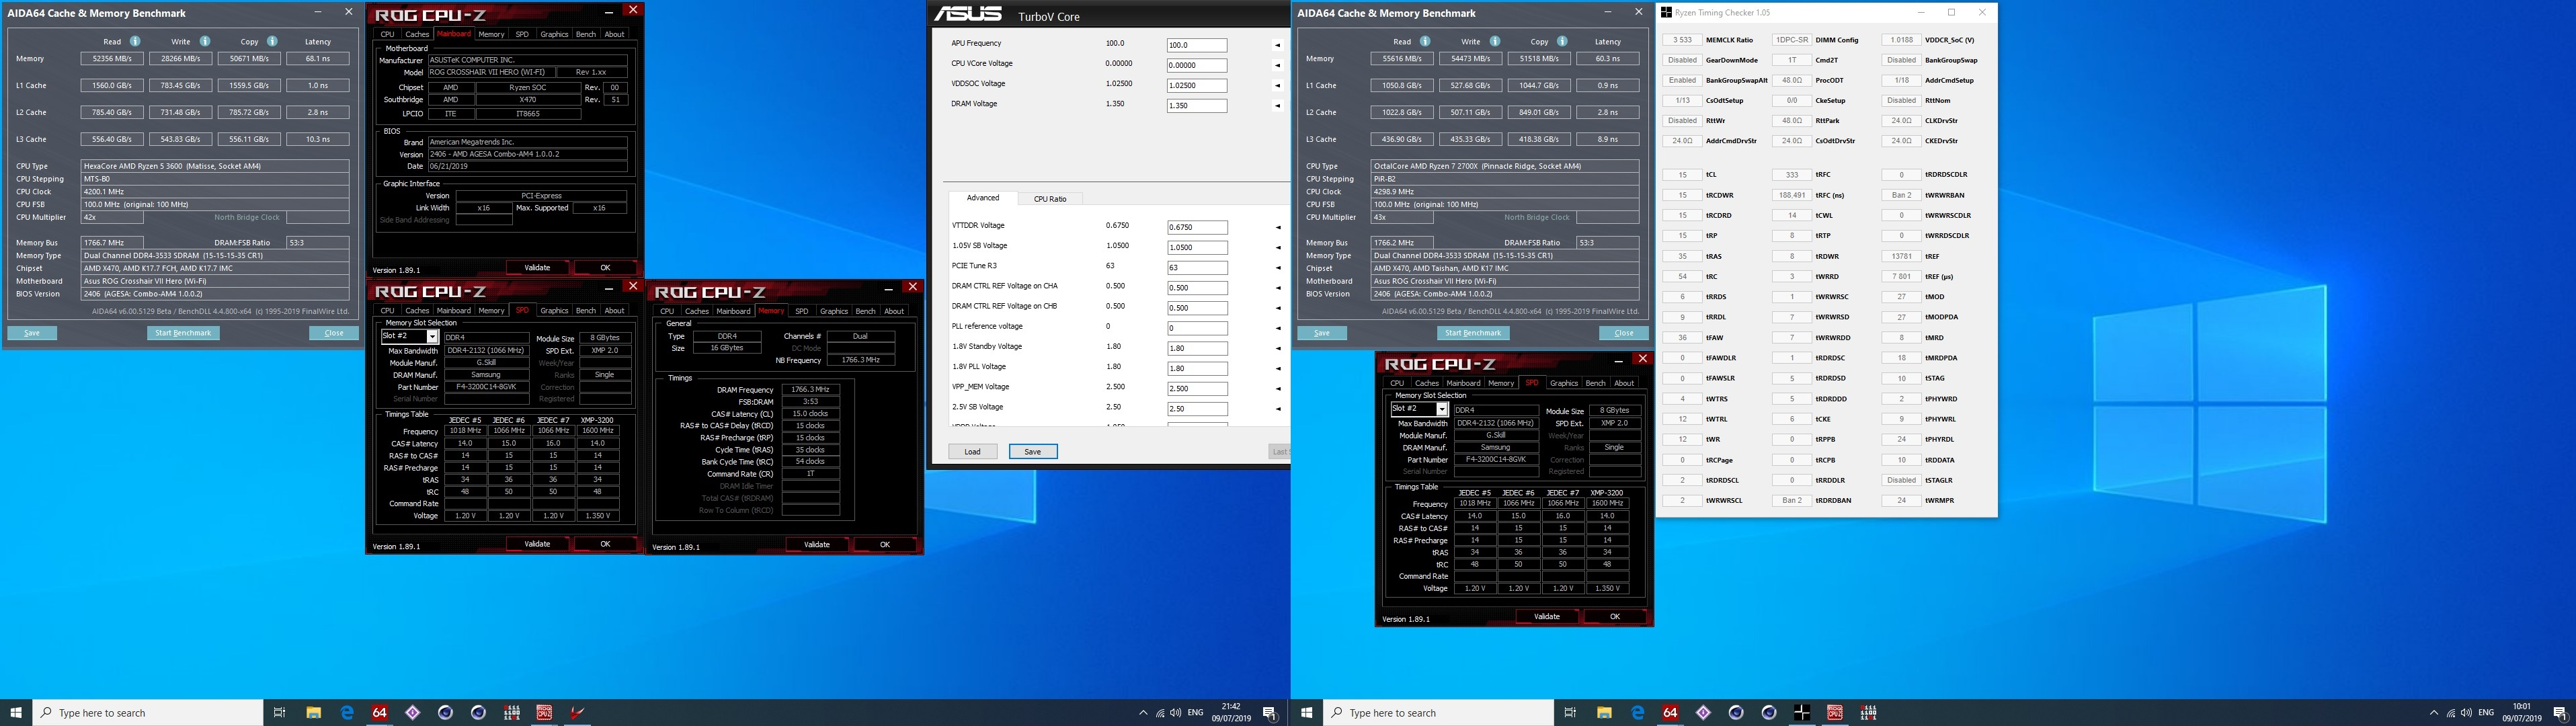 Click image for larger version  Name:R5 3600 vs 2700X 3533S AIDA64.jpg Views:72 Size:786.8 KB ID:279008